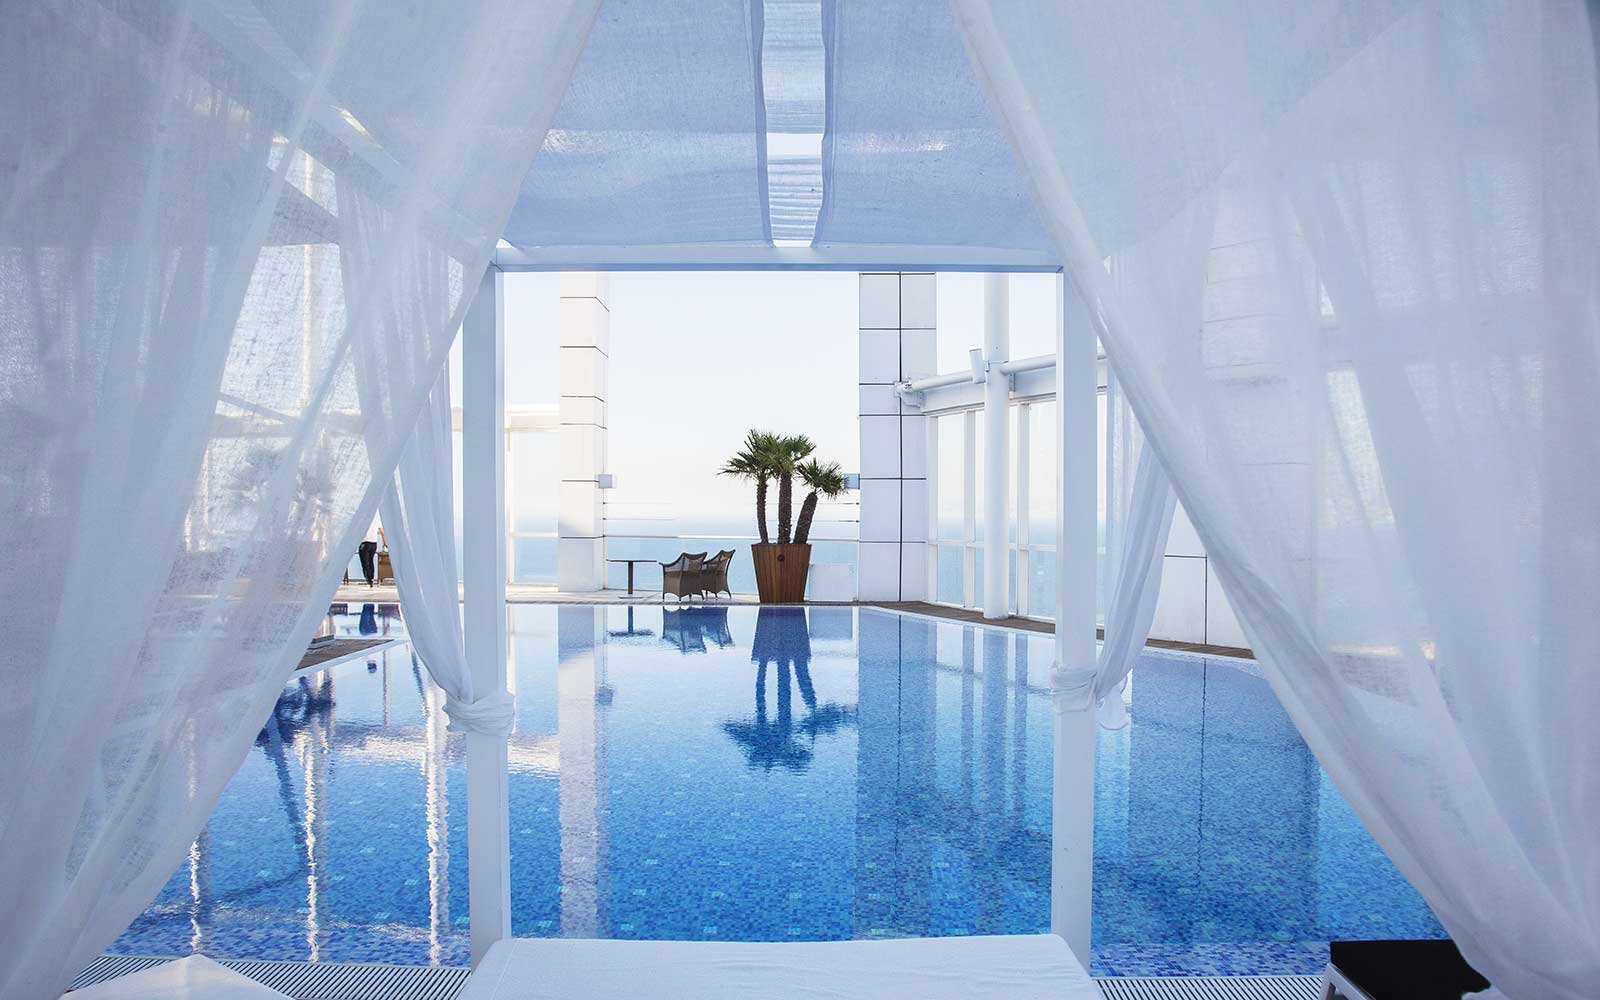 10. Four Seasons Hotel, Beirut, Lebanon